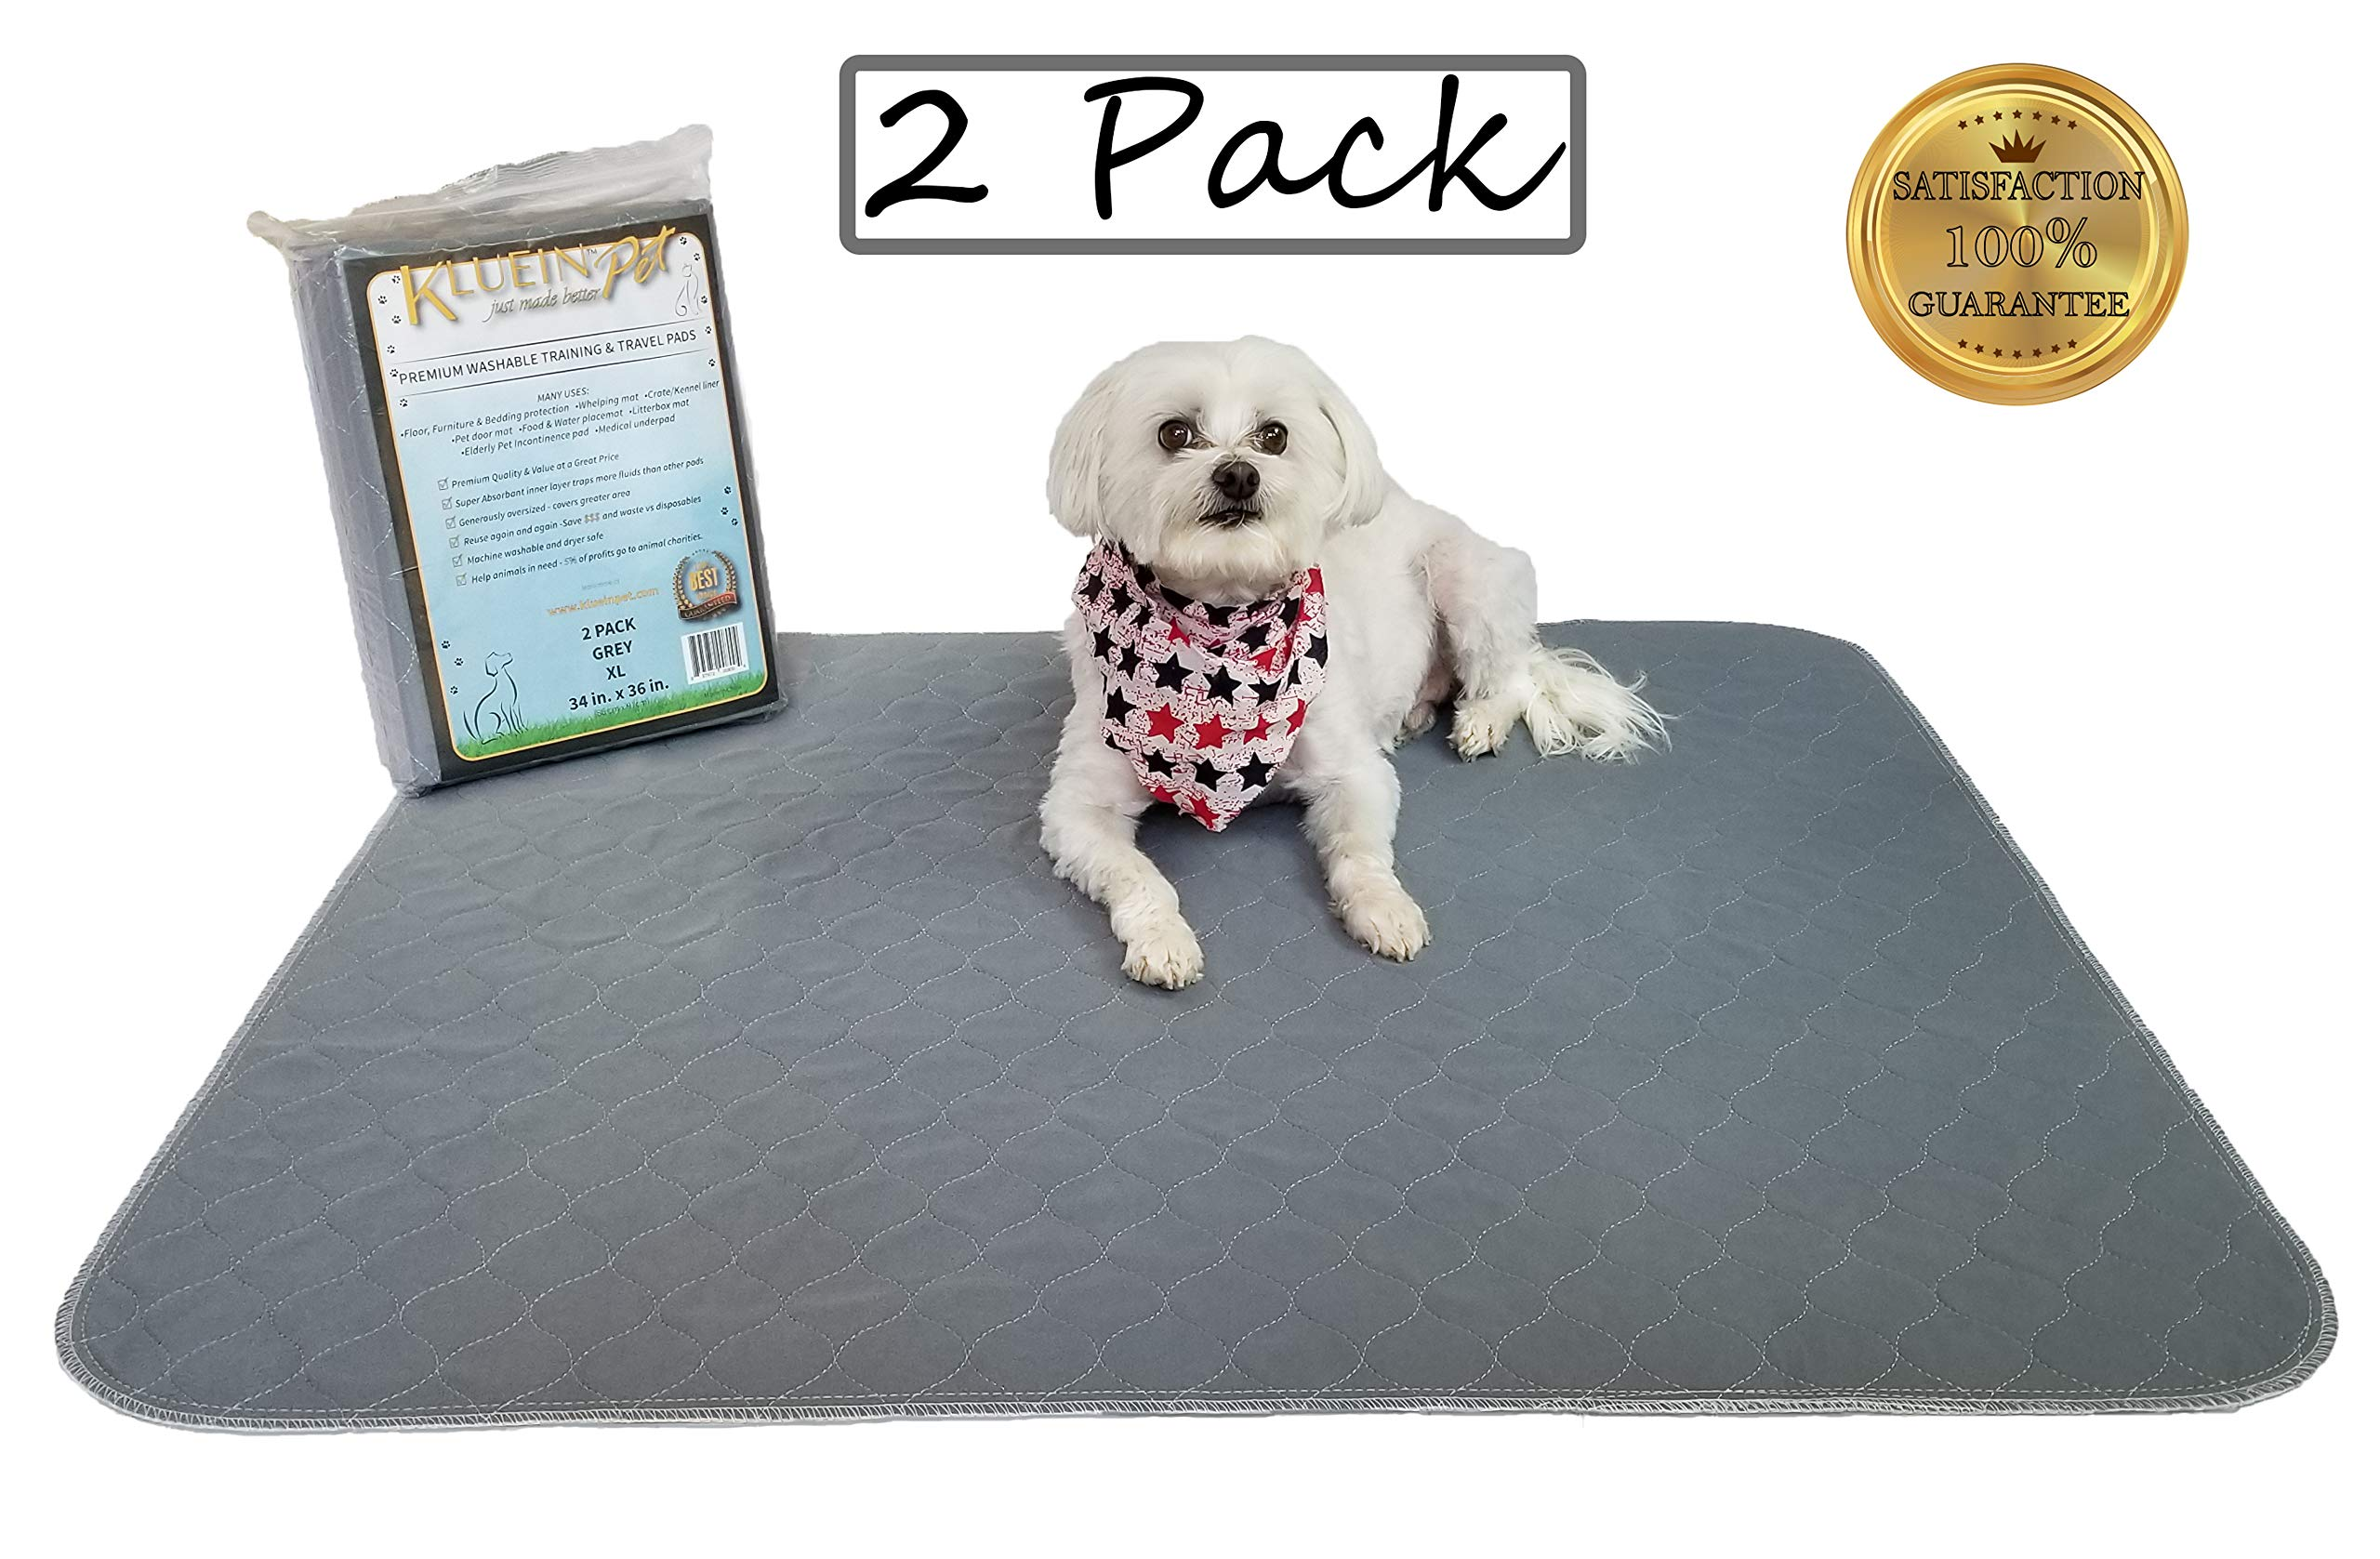 Kluein Pet Washable Pee Pads for Dogs, 2 Pack XL 34 x 36, Grey, Waterproof Reusable Puppy Pads, Fast Absorbing Wee Wee Mat; for Playpen, Housebreaking, Potty Training, Whelping, Incontinence, Travel